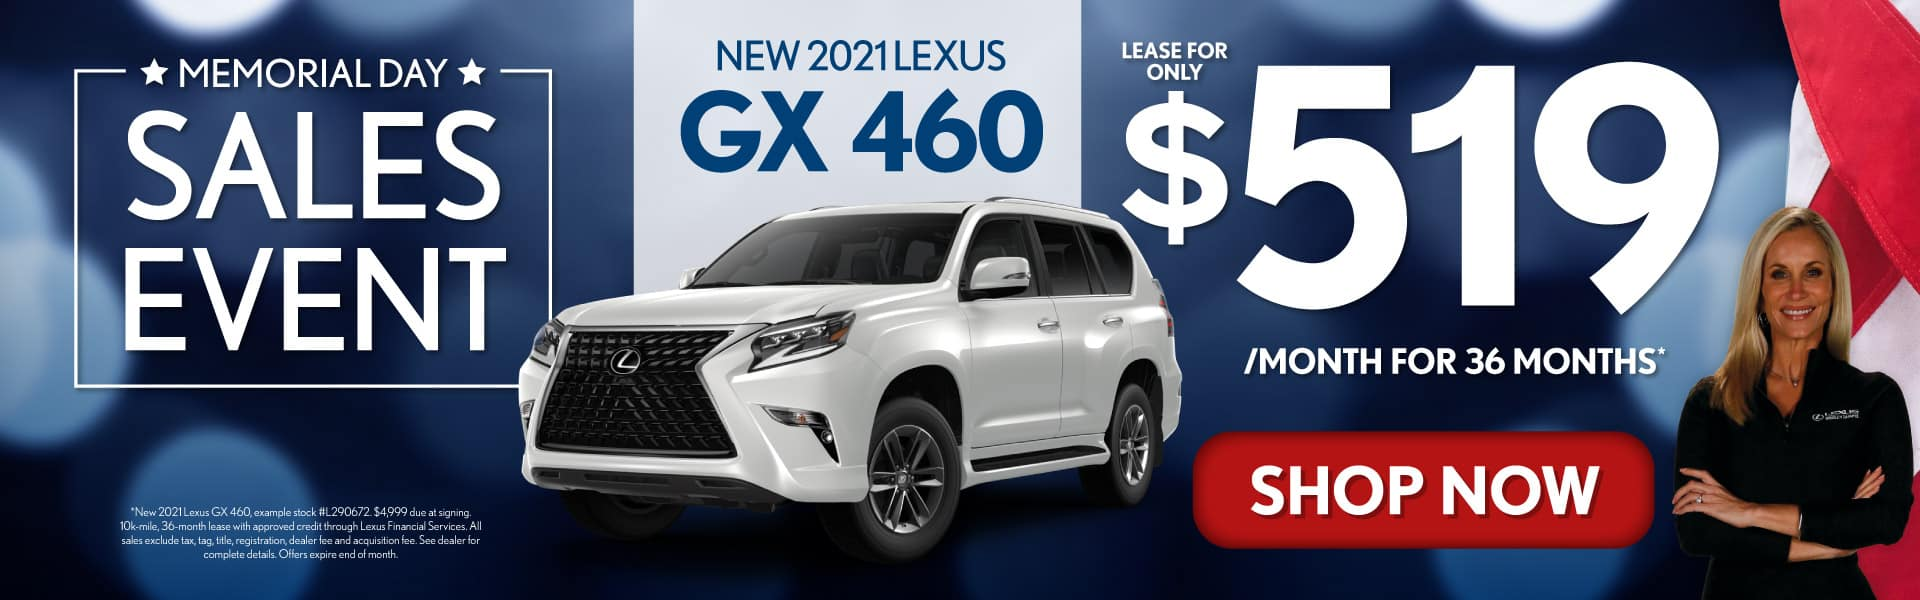 New 2021 Lexus GX 460 only $519/mo - SHOP NOW